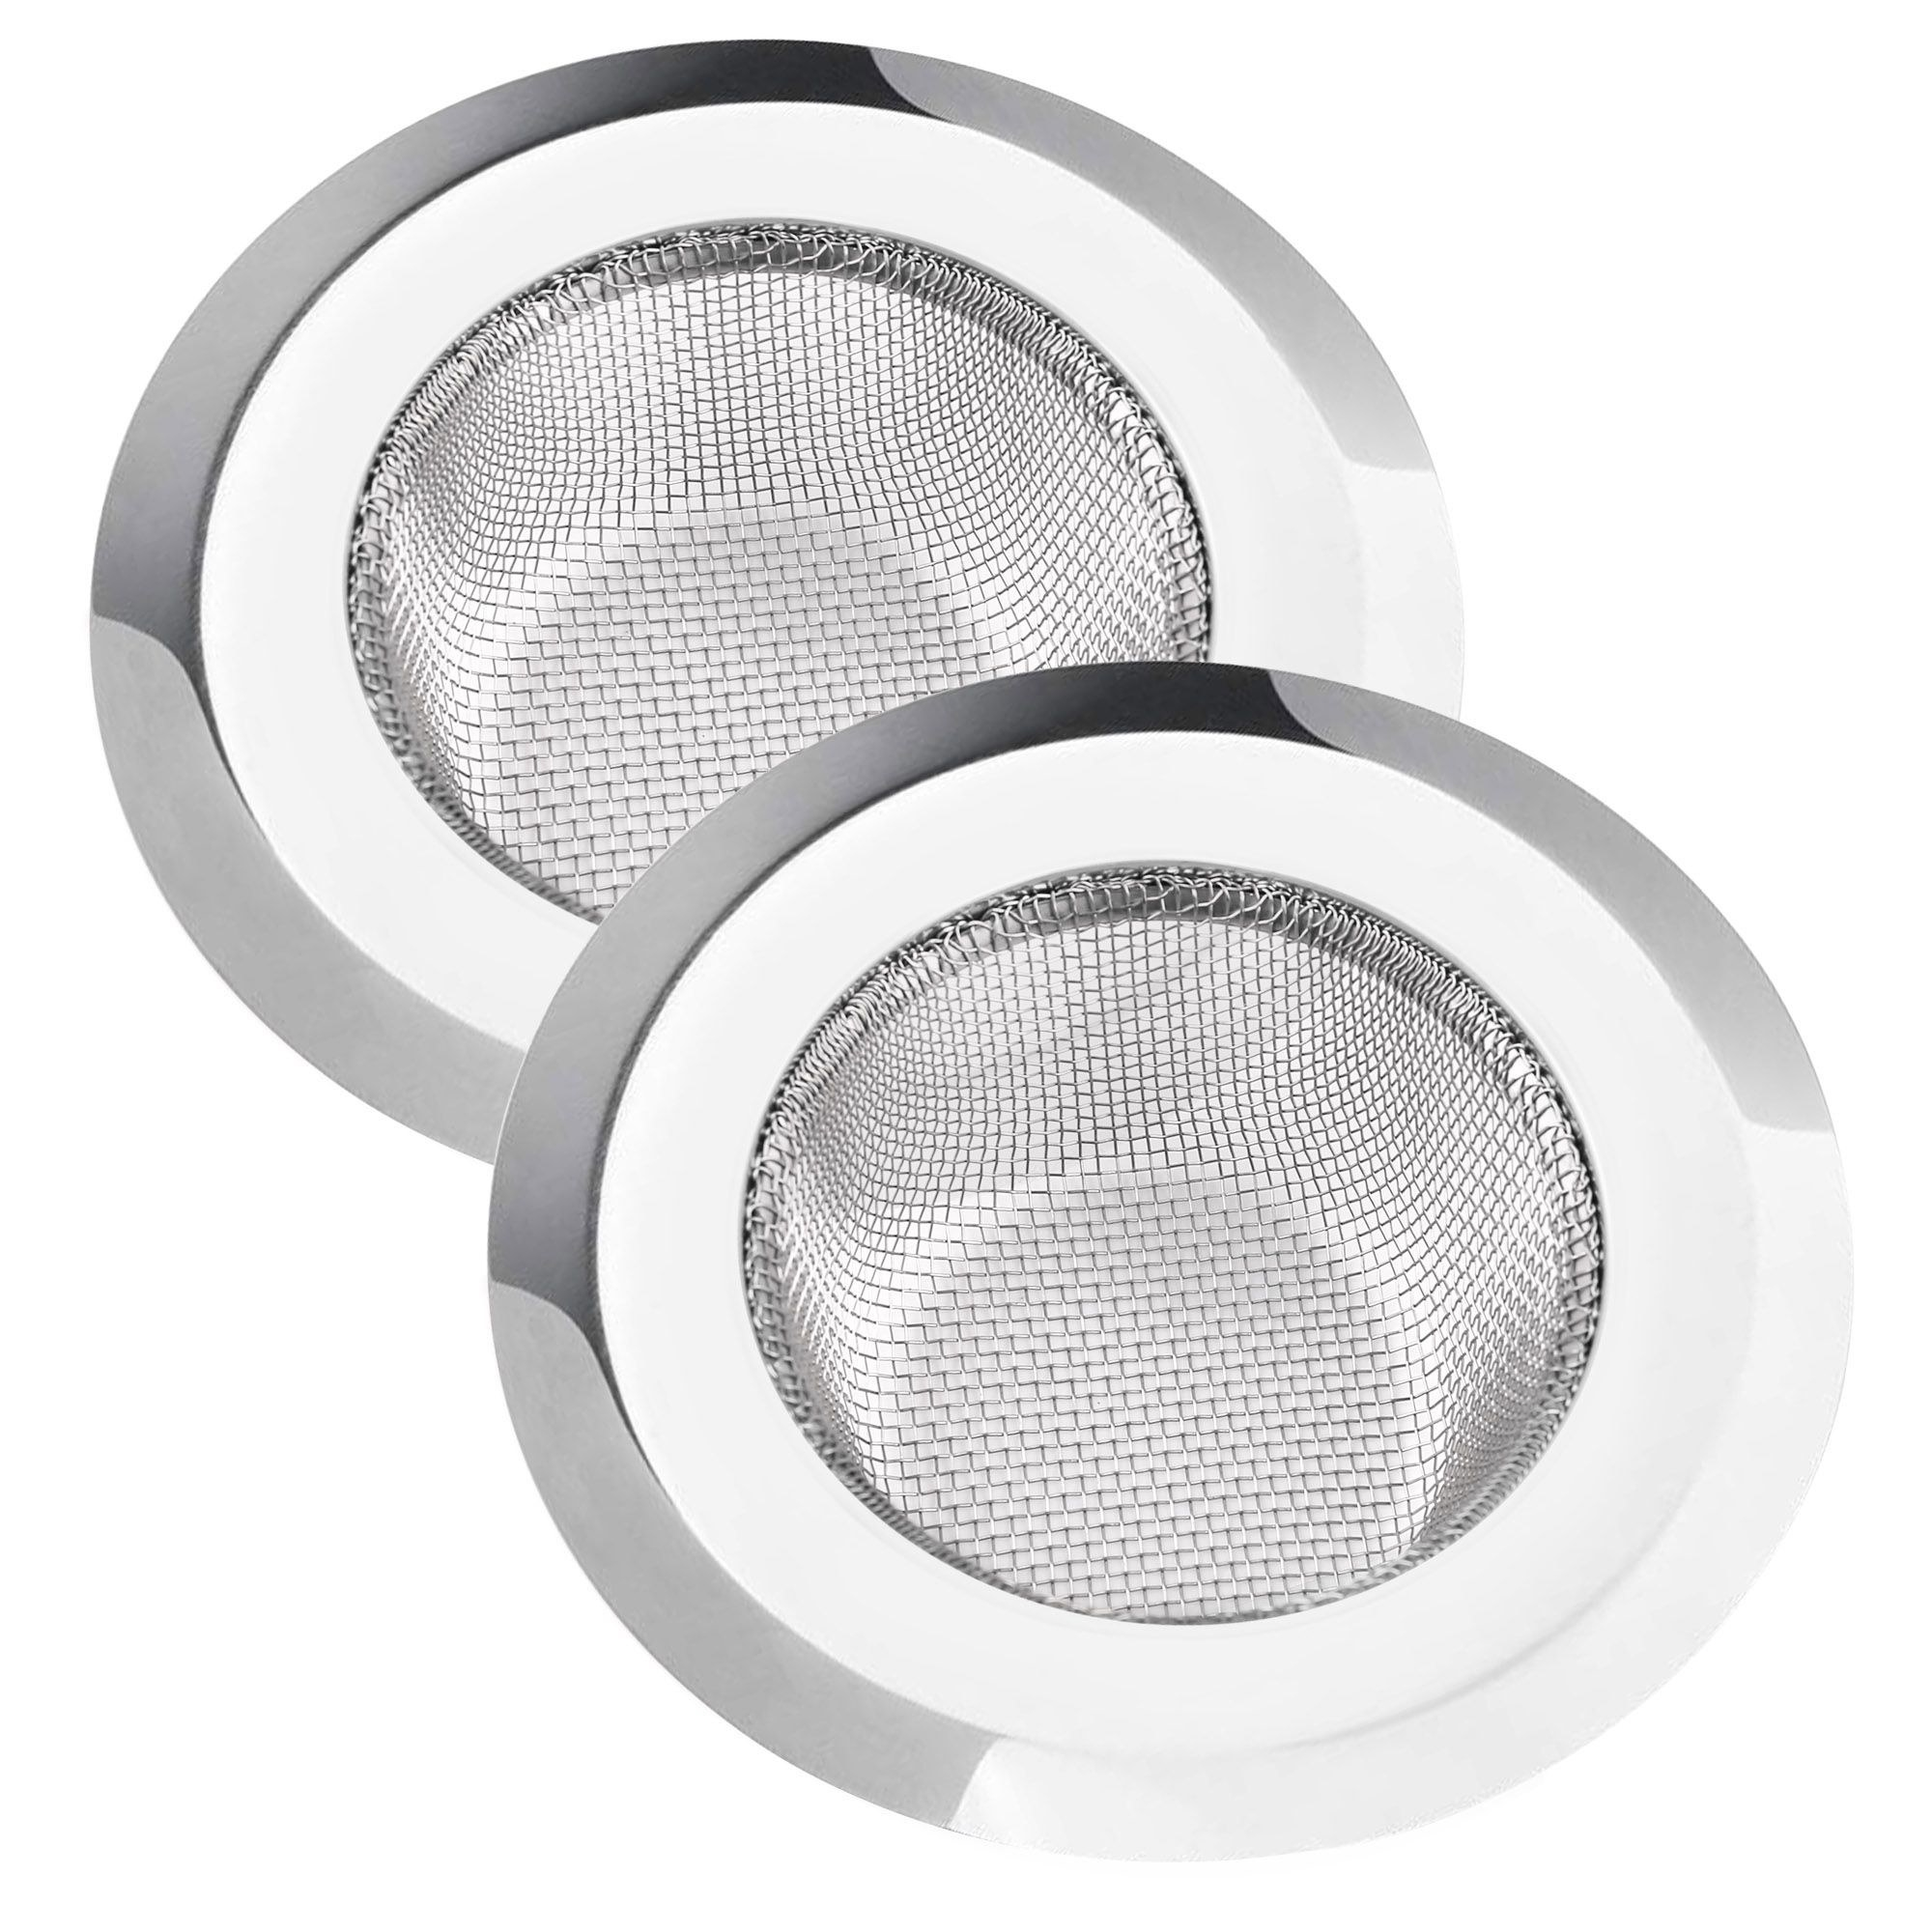 Product photo showing kitchen sink strainers